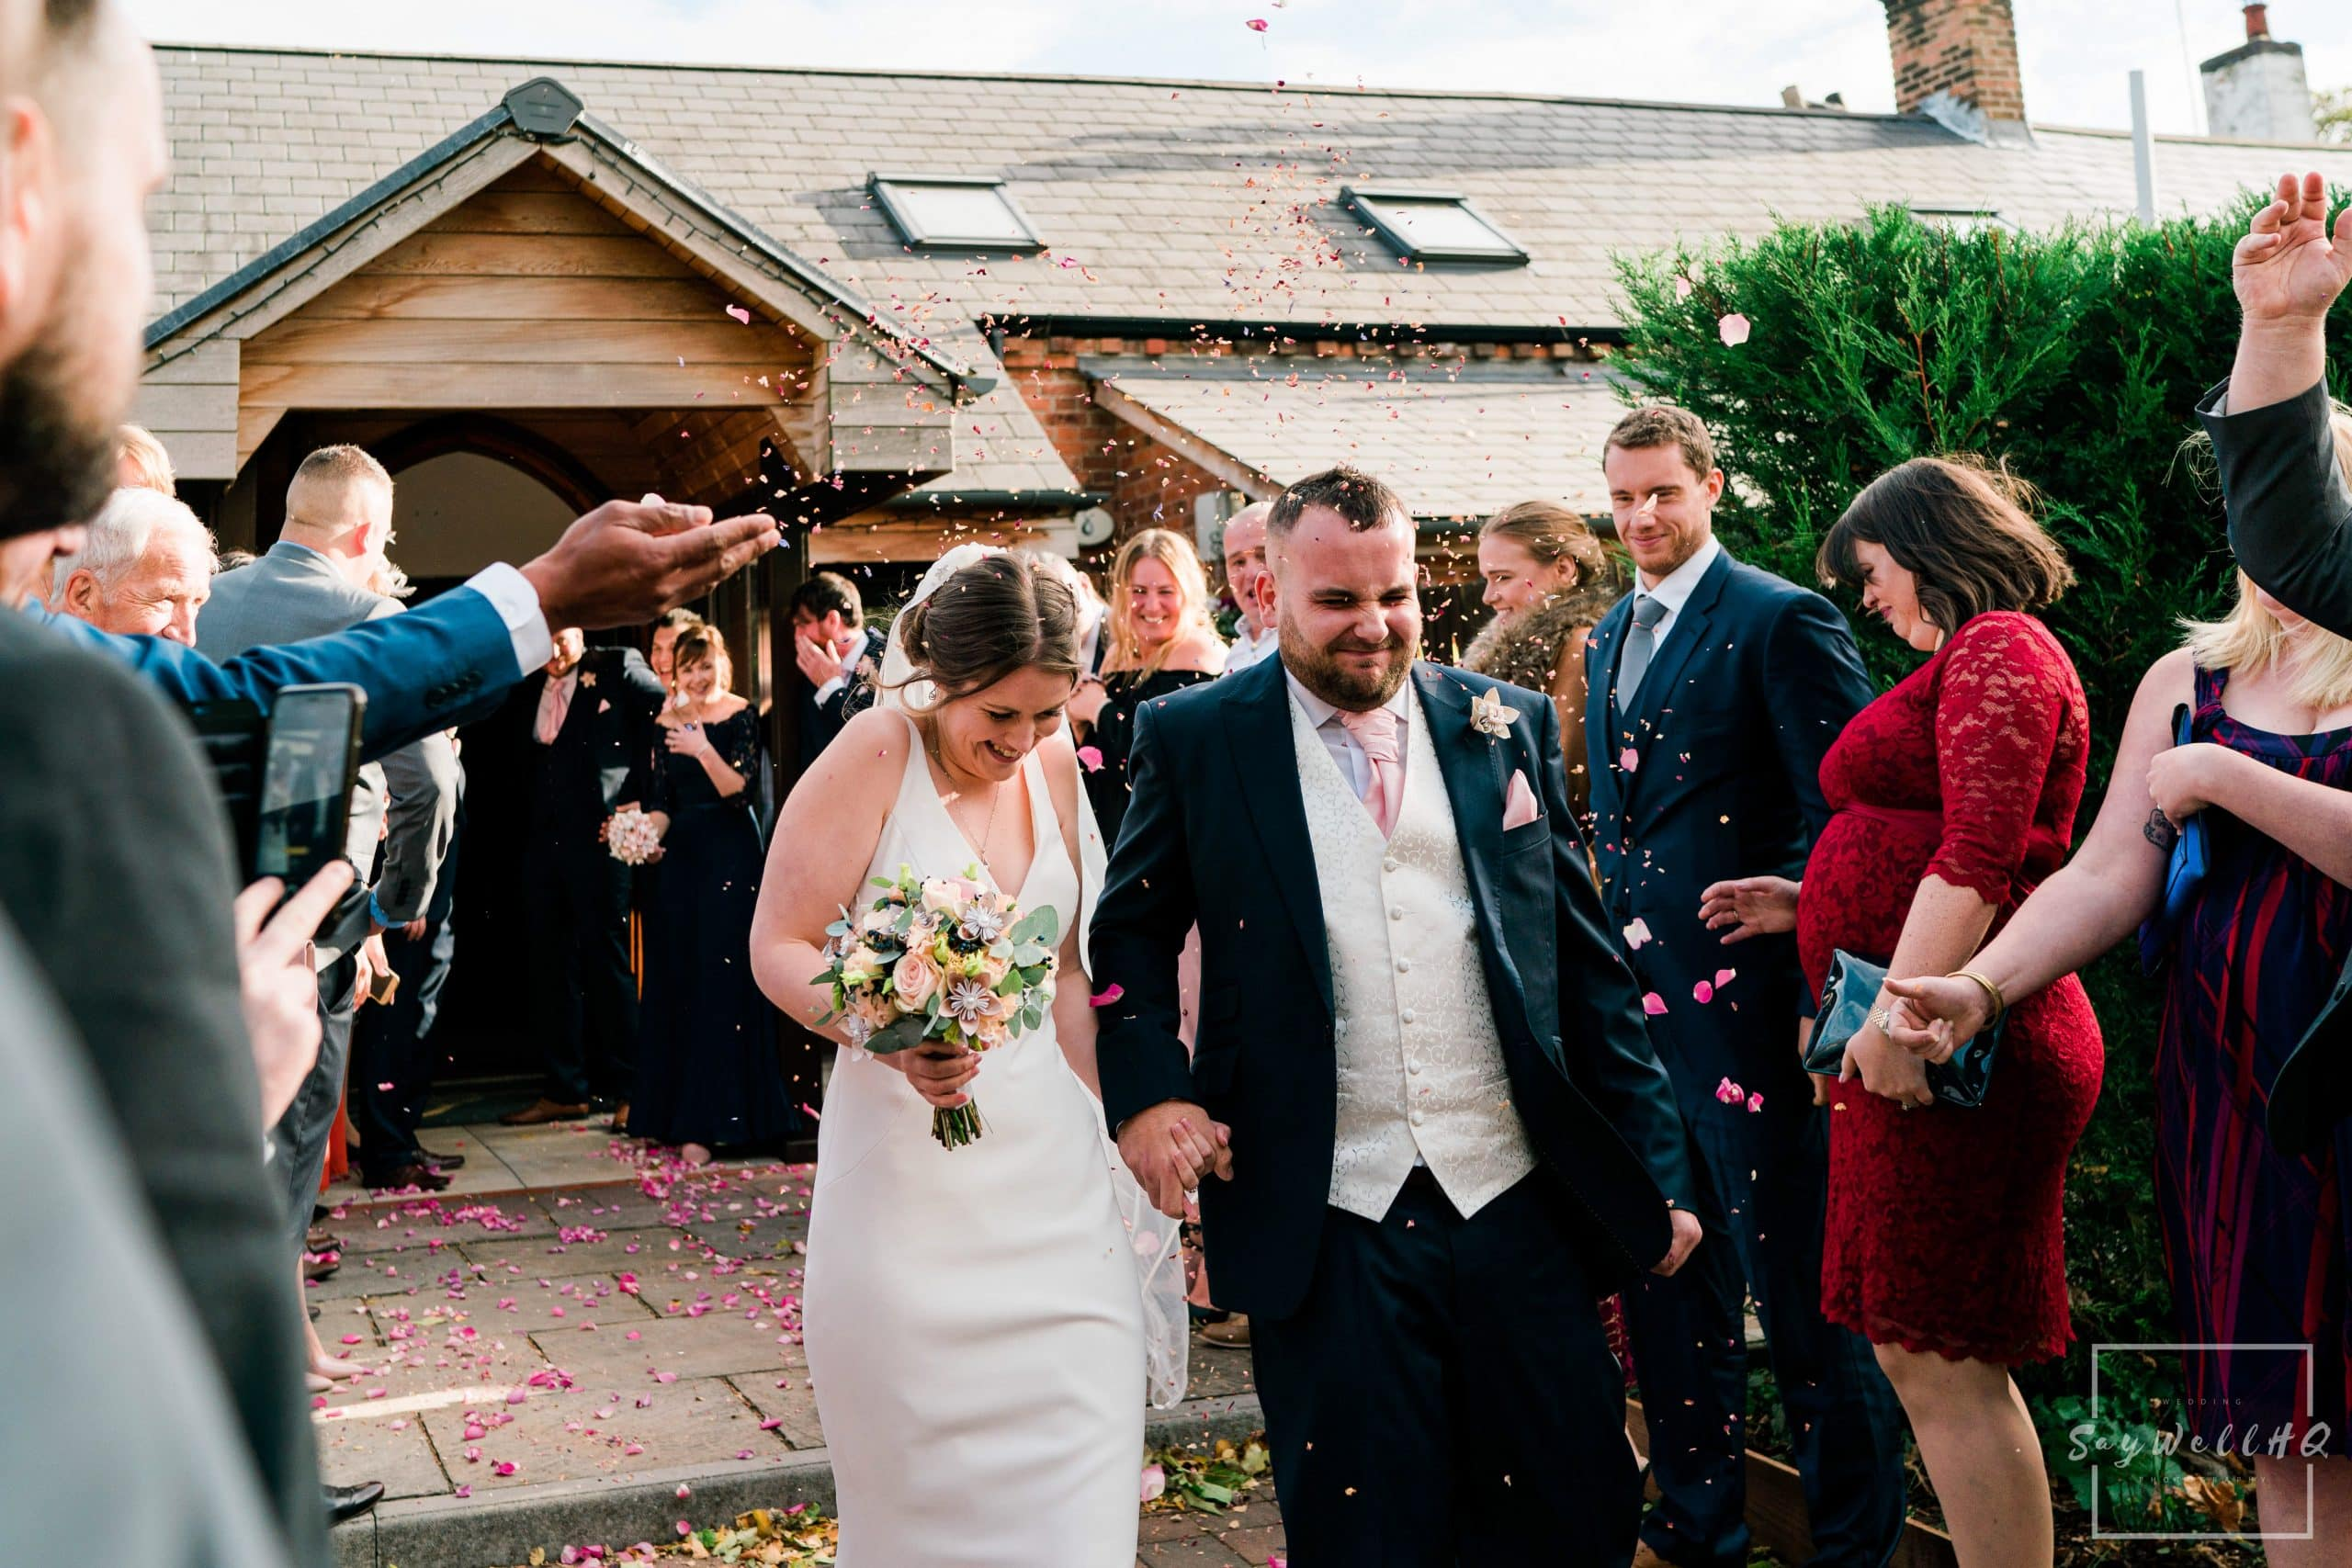 Bride and Groom run through the confetti at their Goosedale wedding - Wedding Photography by goosedale wedding photographer Andy Saywell of SaywellHQ